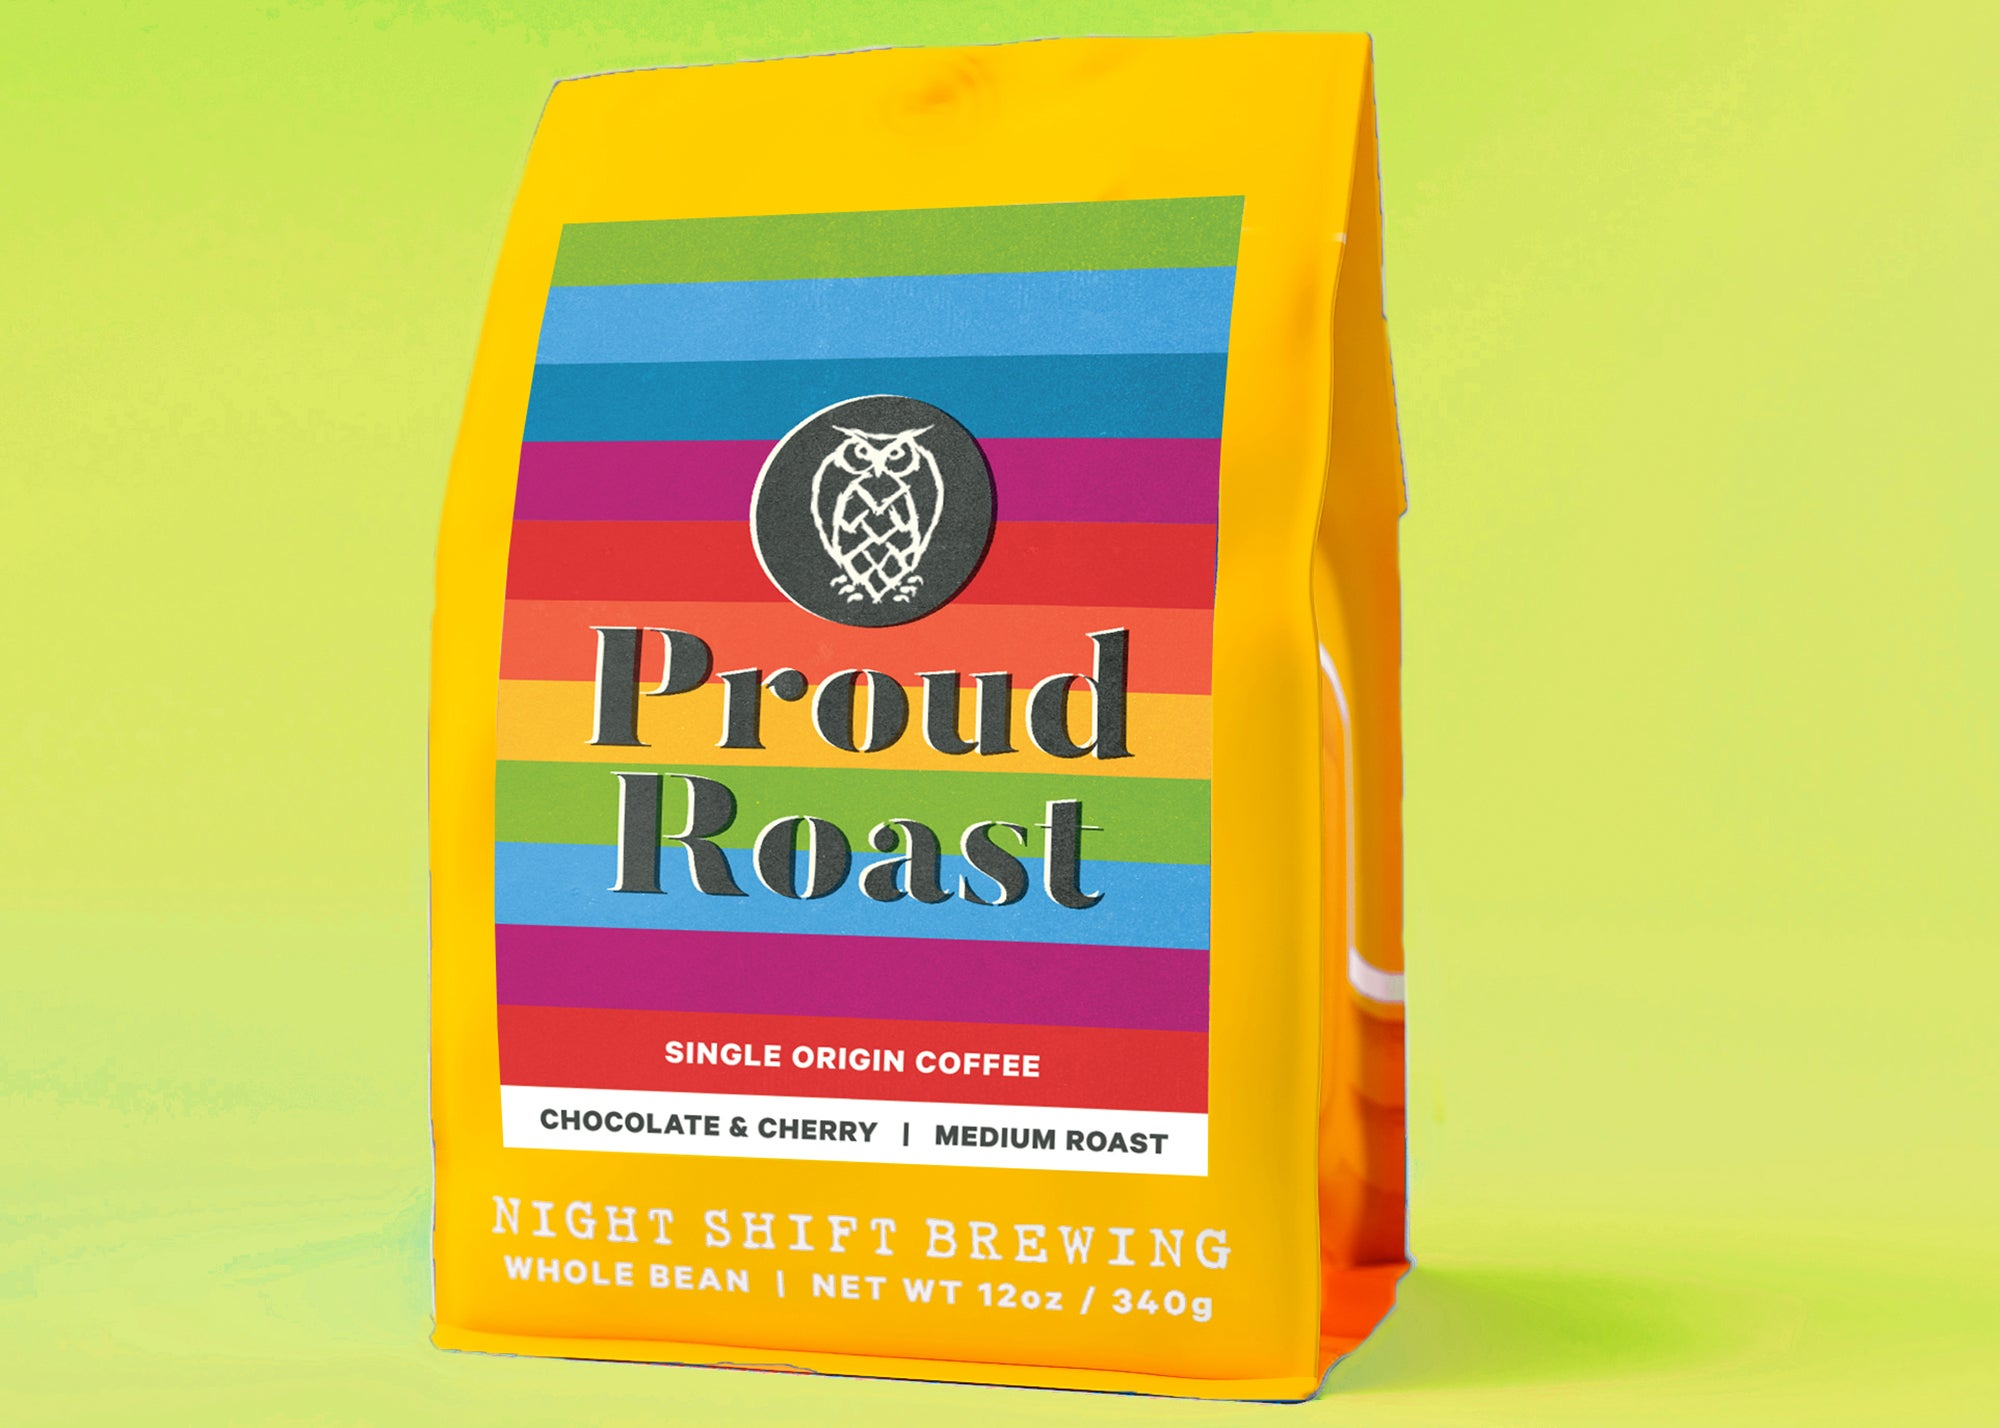 Proud Roast from Night Shift Brewing